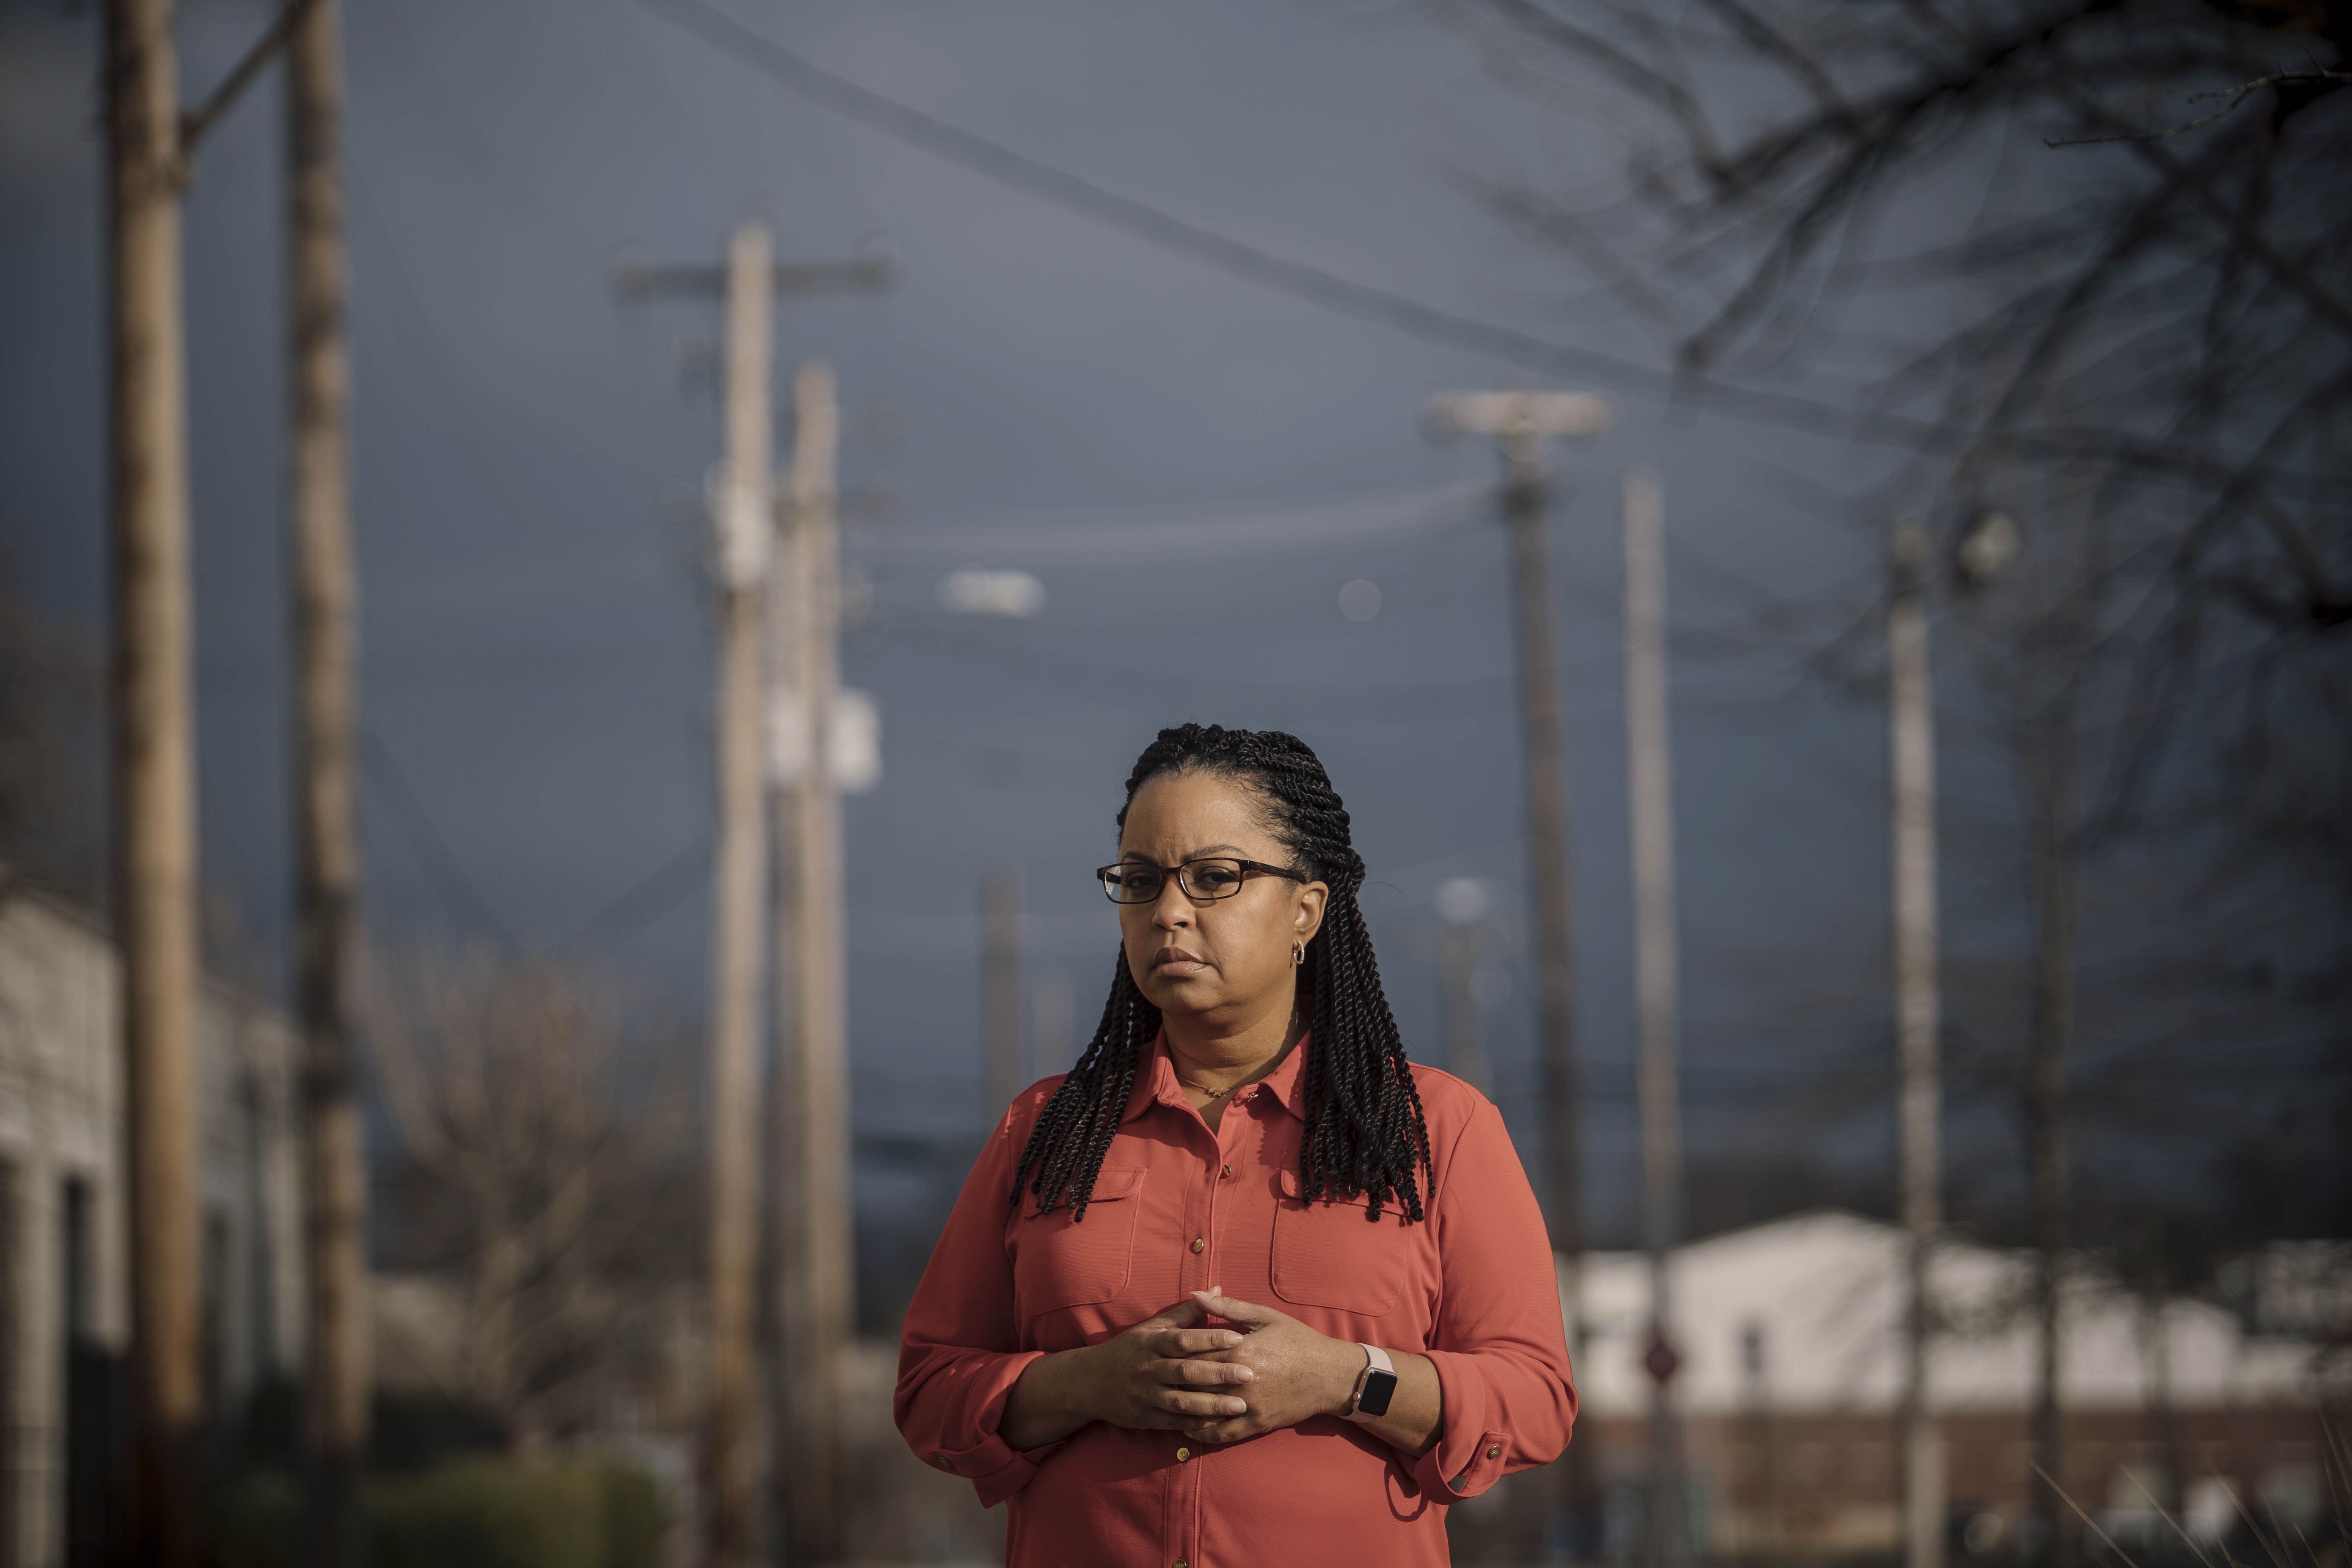 December 6, 2019 - Memphis, TN: Wendi C. Thomas, a journalist who has been reporting on inequity in Memphis for years, stands for a portrait.